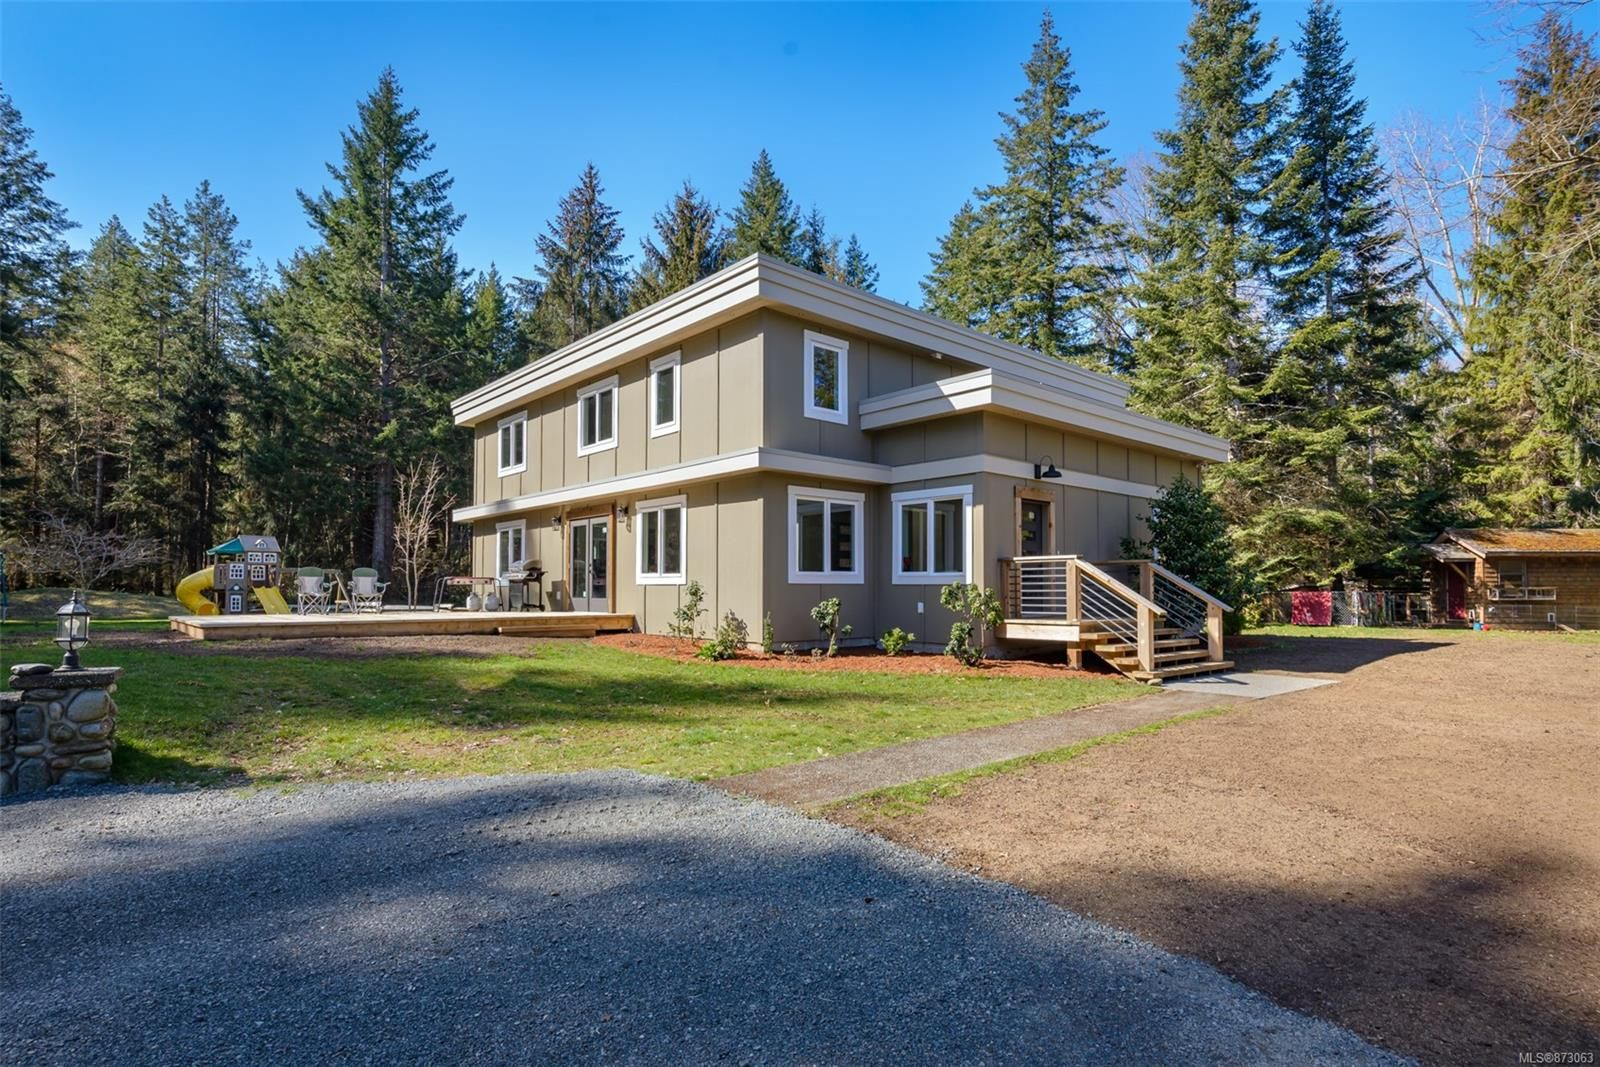 Main Photo: 5771 Bates Rd in : CV Courtenay North House for sale (Comox Valley)  : MLS®# 873063